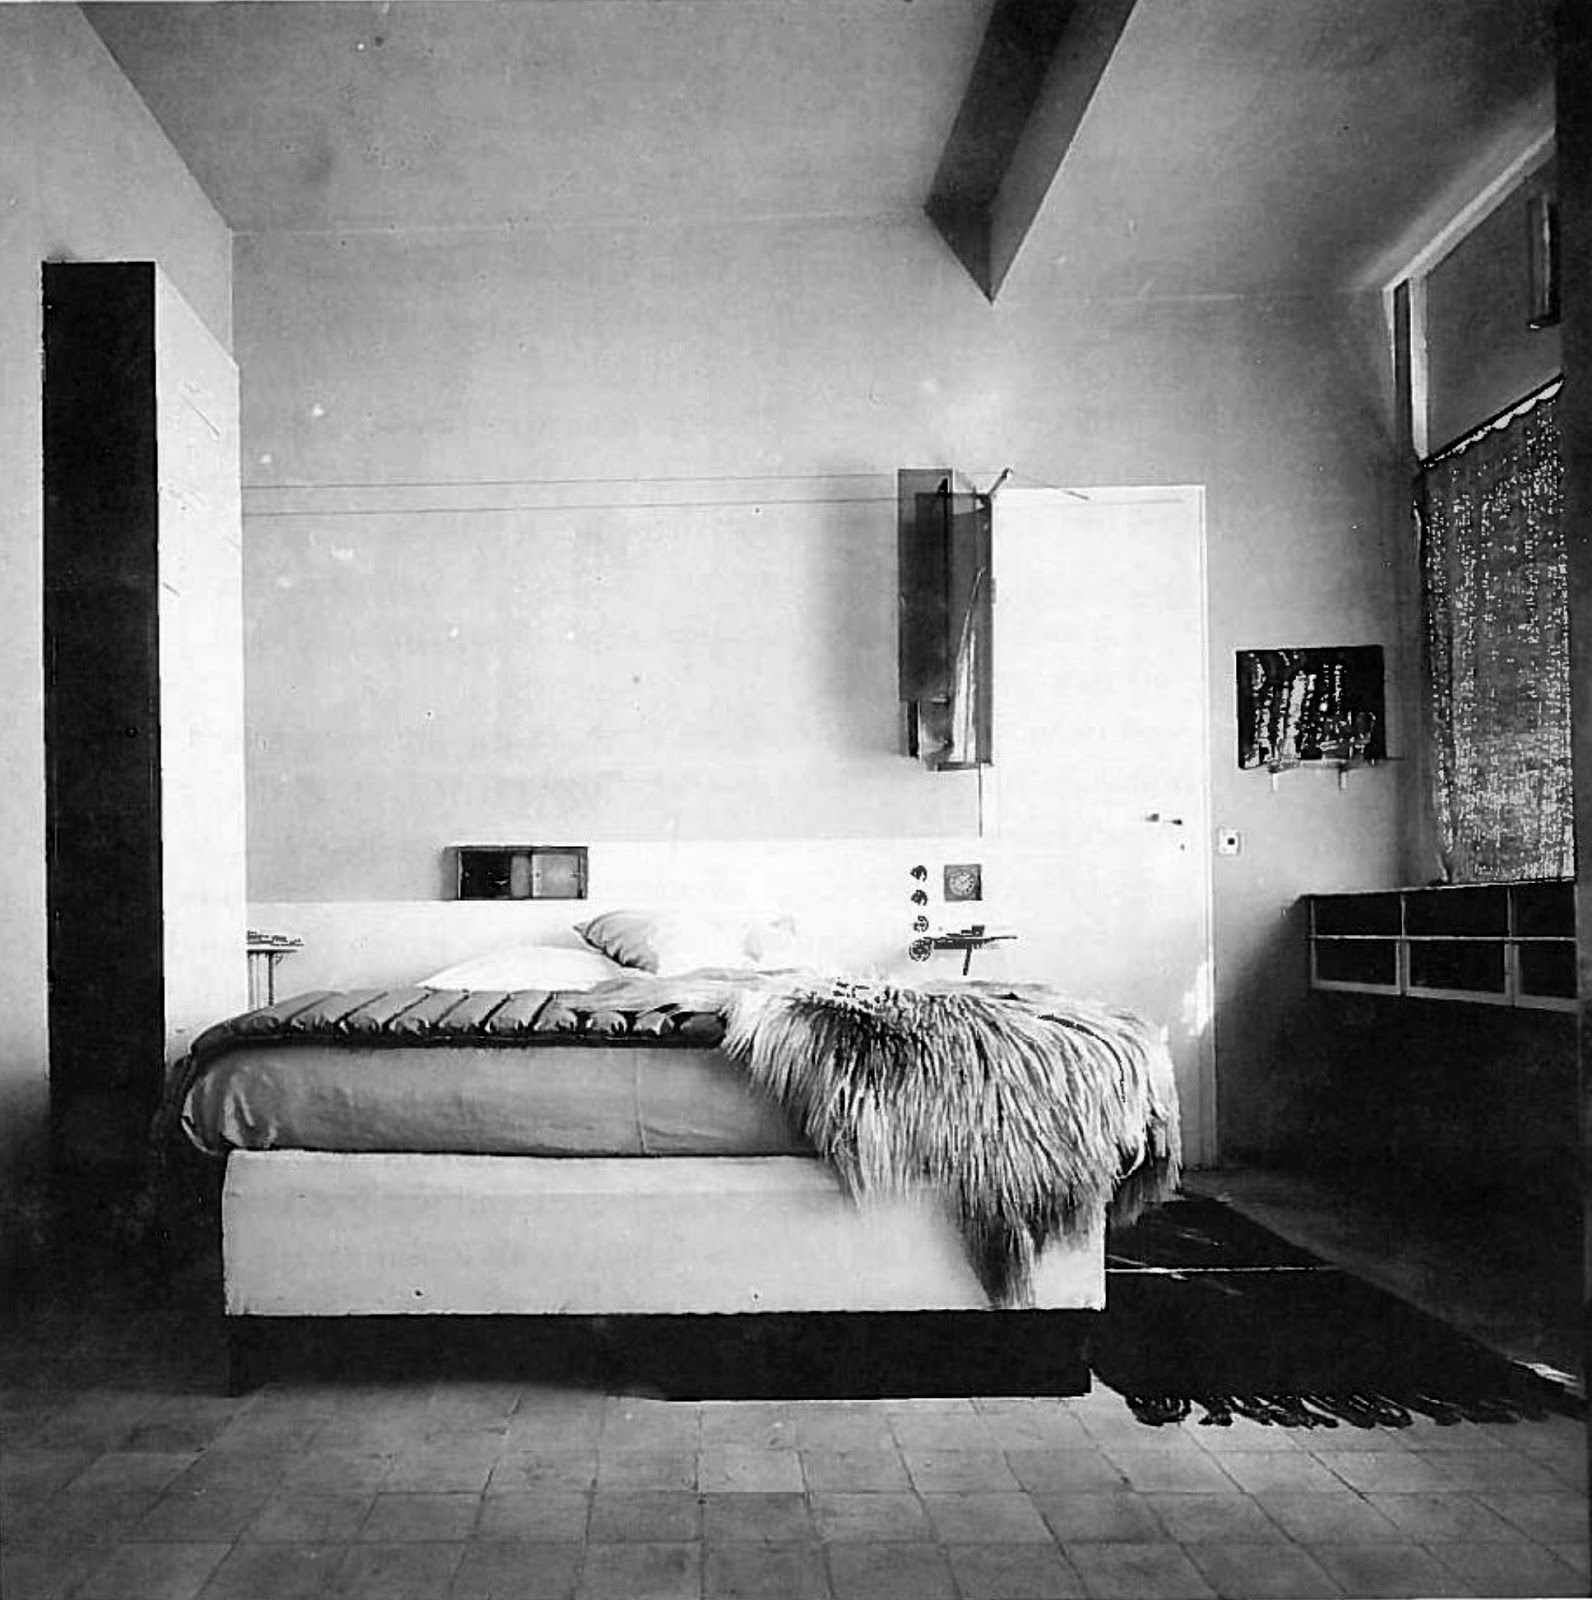 eileen gray interior pinterest weimarer republik 20er jahre und weiss. Black Bedroom Furniture Sets. Home Design Ideas